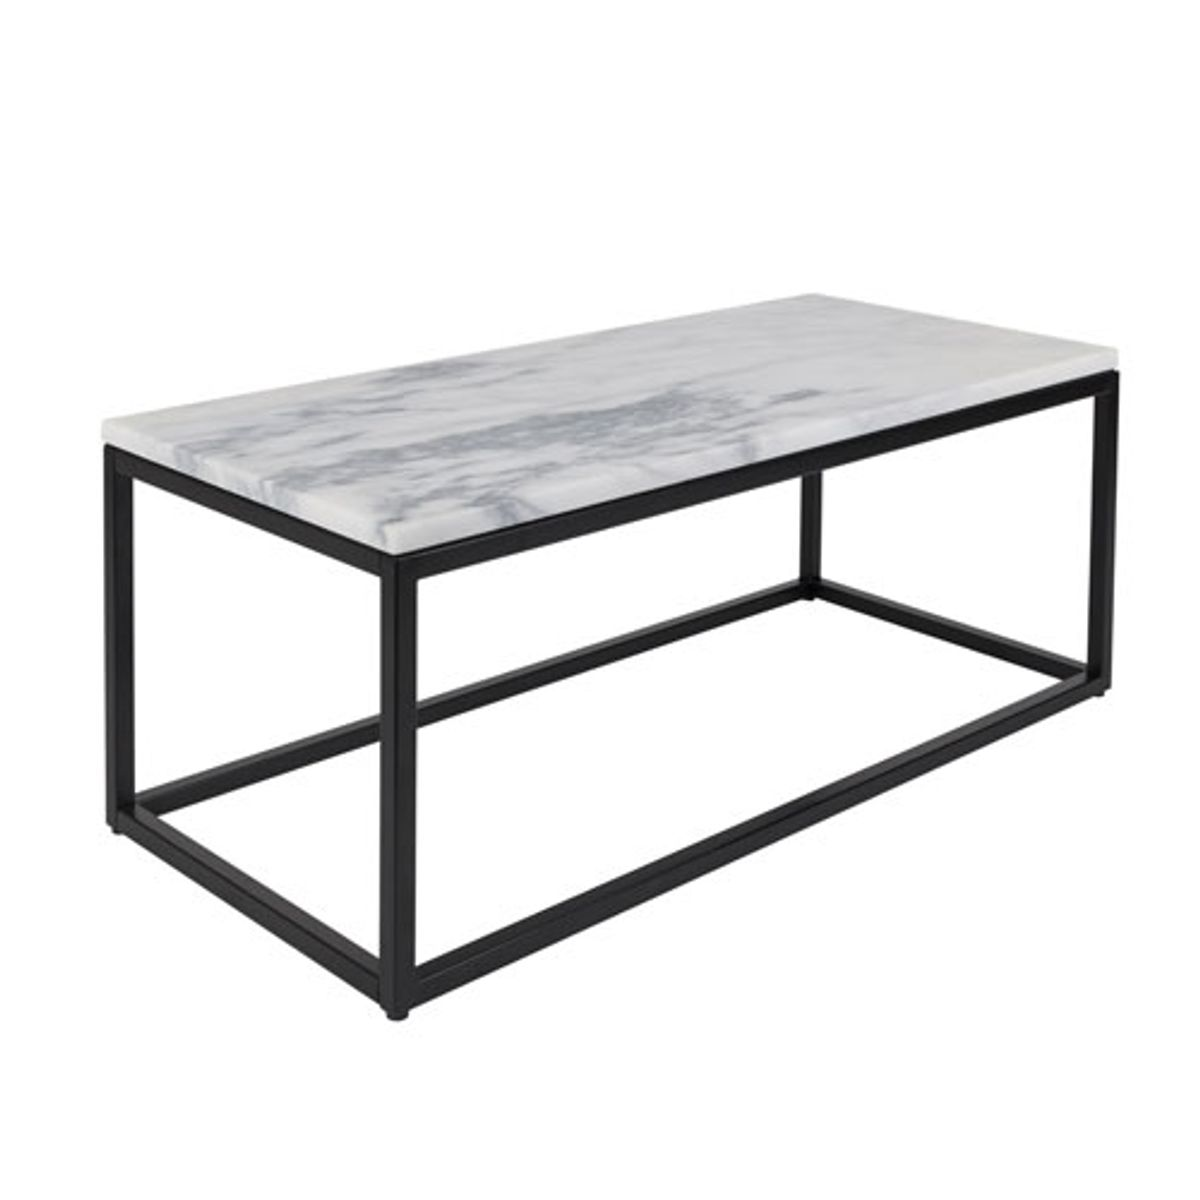 table basse rectangulaire plateau marbre marble power zuiver decoclico. Black Bedroom Furniture Sets. Home Design Ideas